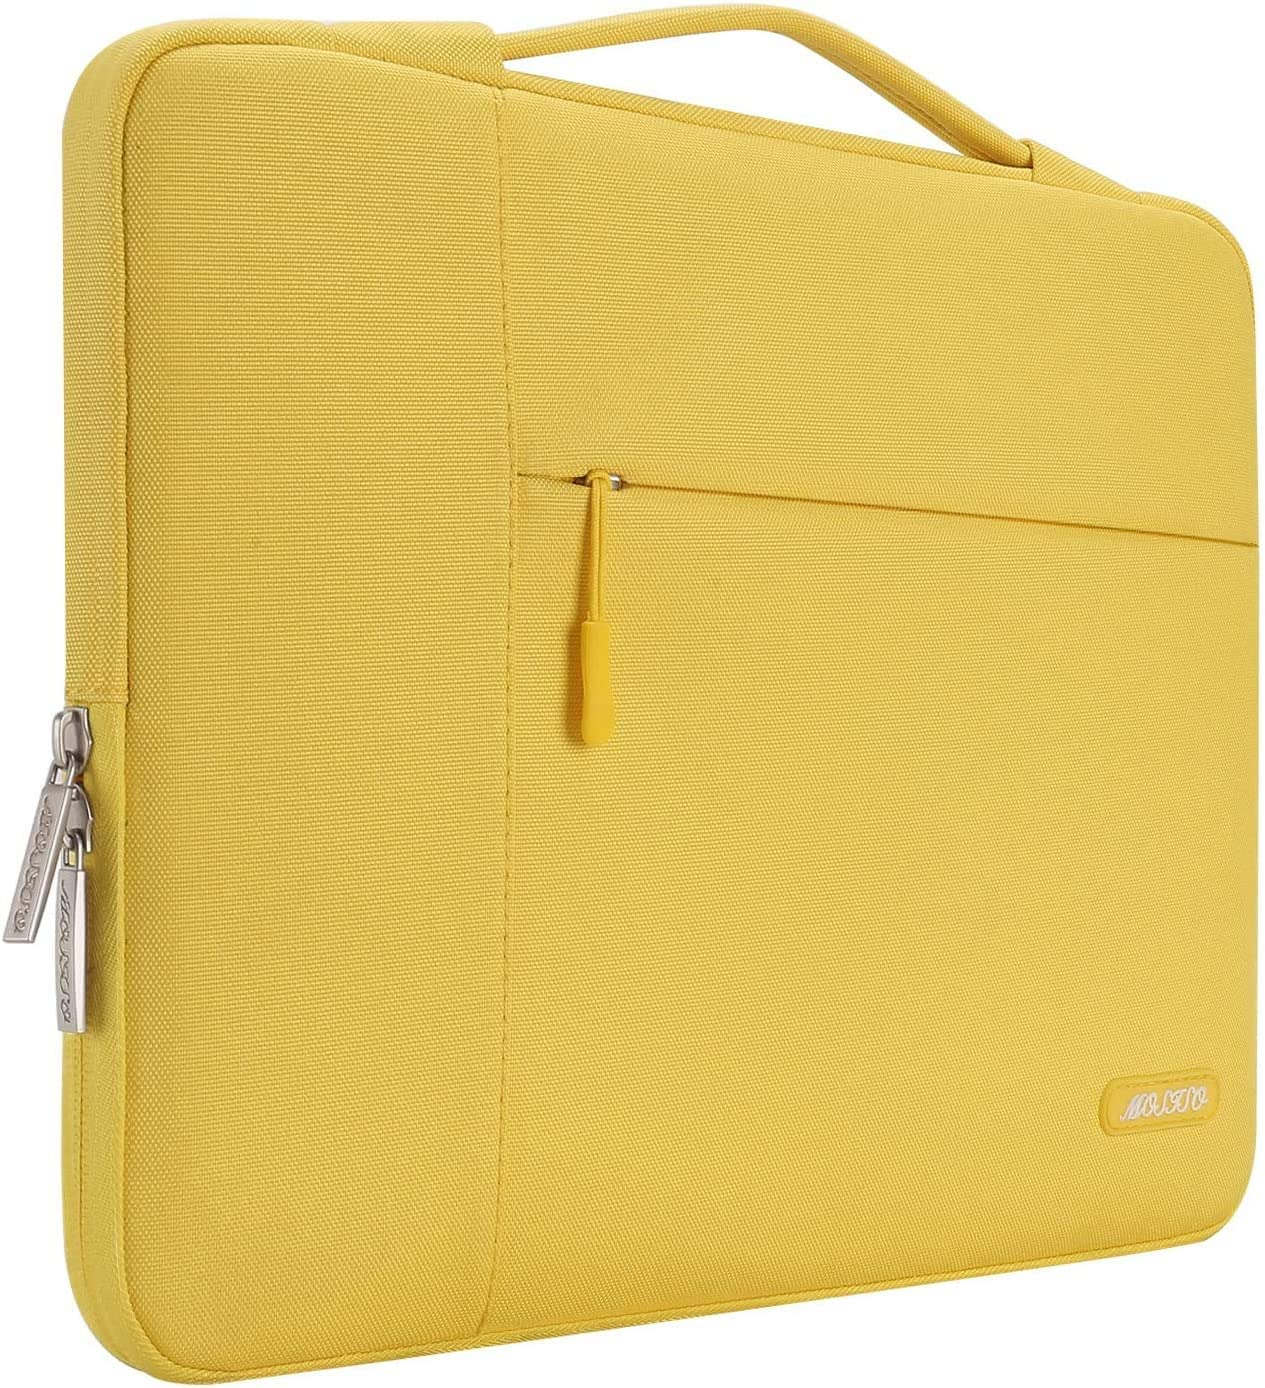 MOSISO Laptop Sleeve Compatible with MacBook Pro 16 inch, 15 15.4 15.6 inch Dell Lenovo HP Asus Acer Samsung Sony Chromebook,Polyester Multifunctional Briefcase Carrying Bag, Yellow